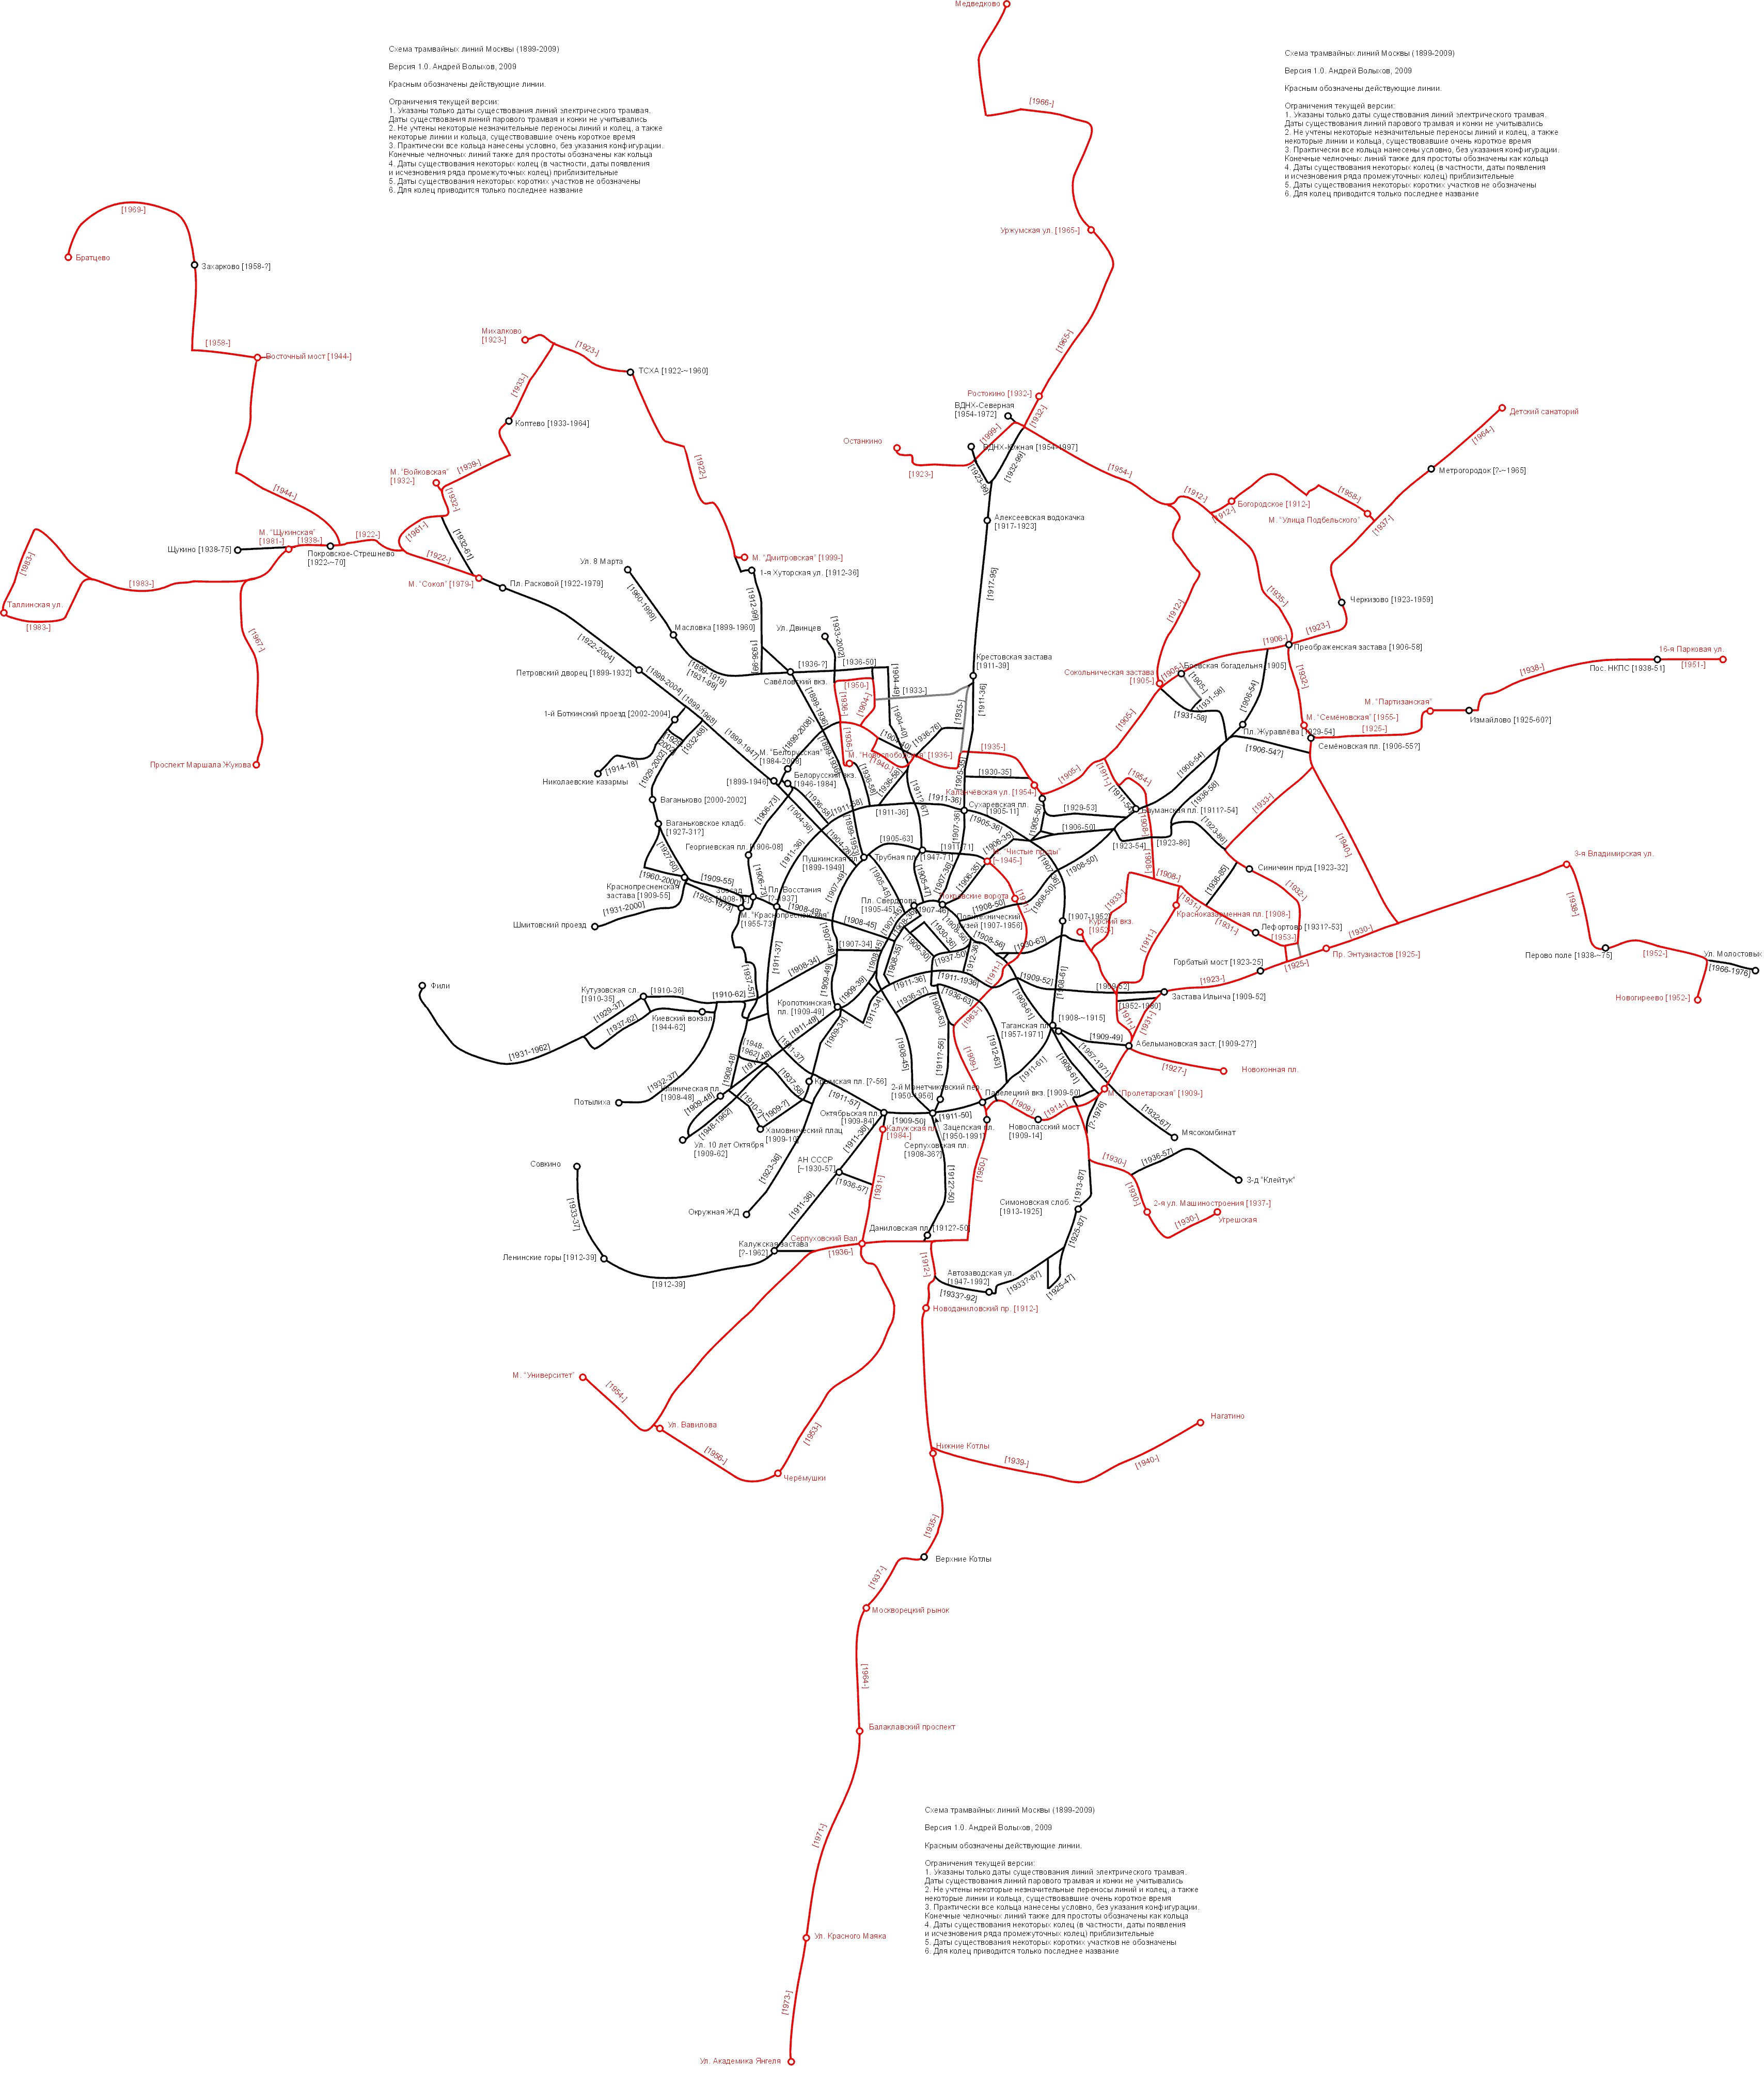 Moscow — Network Maps